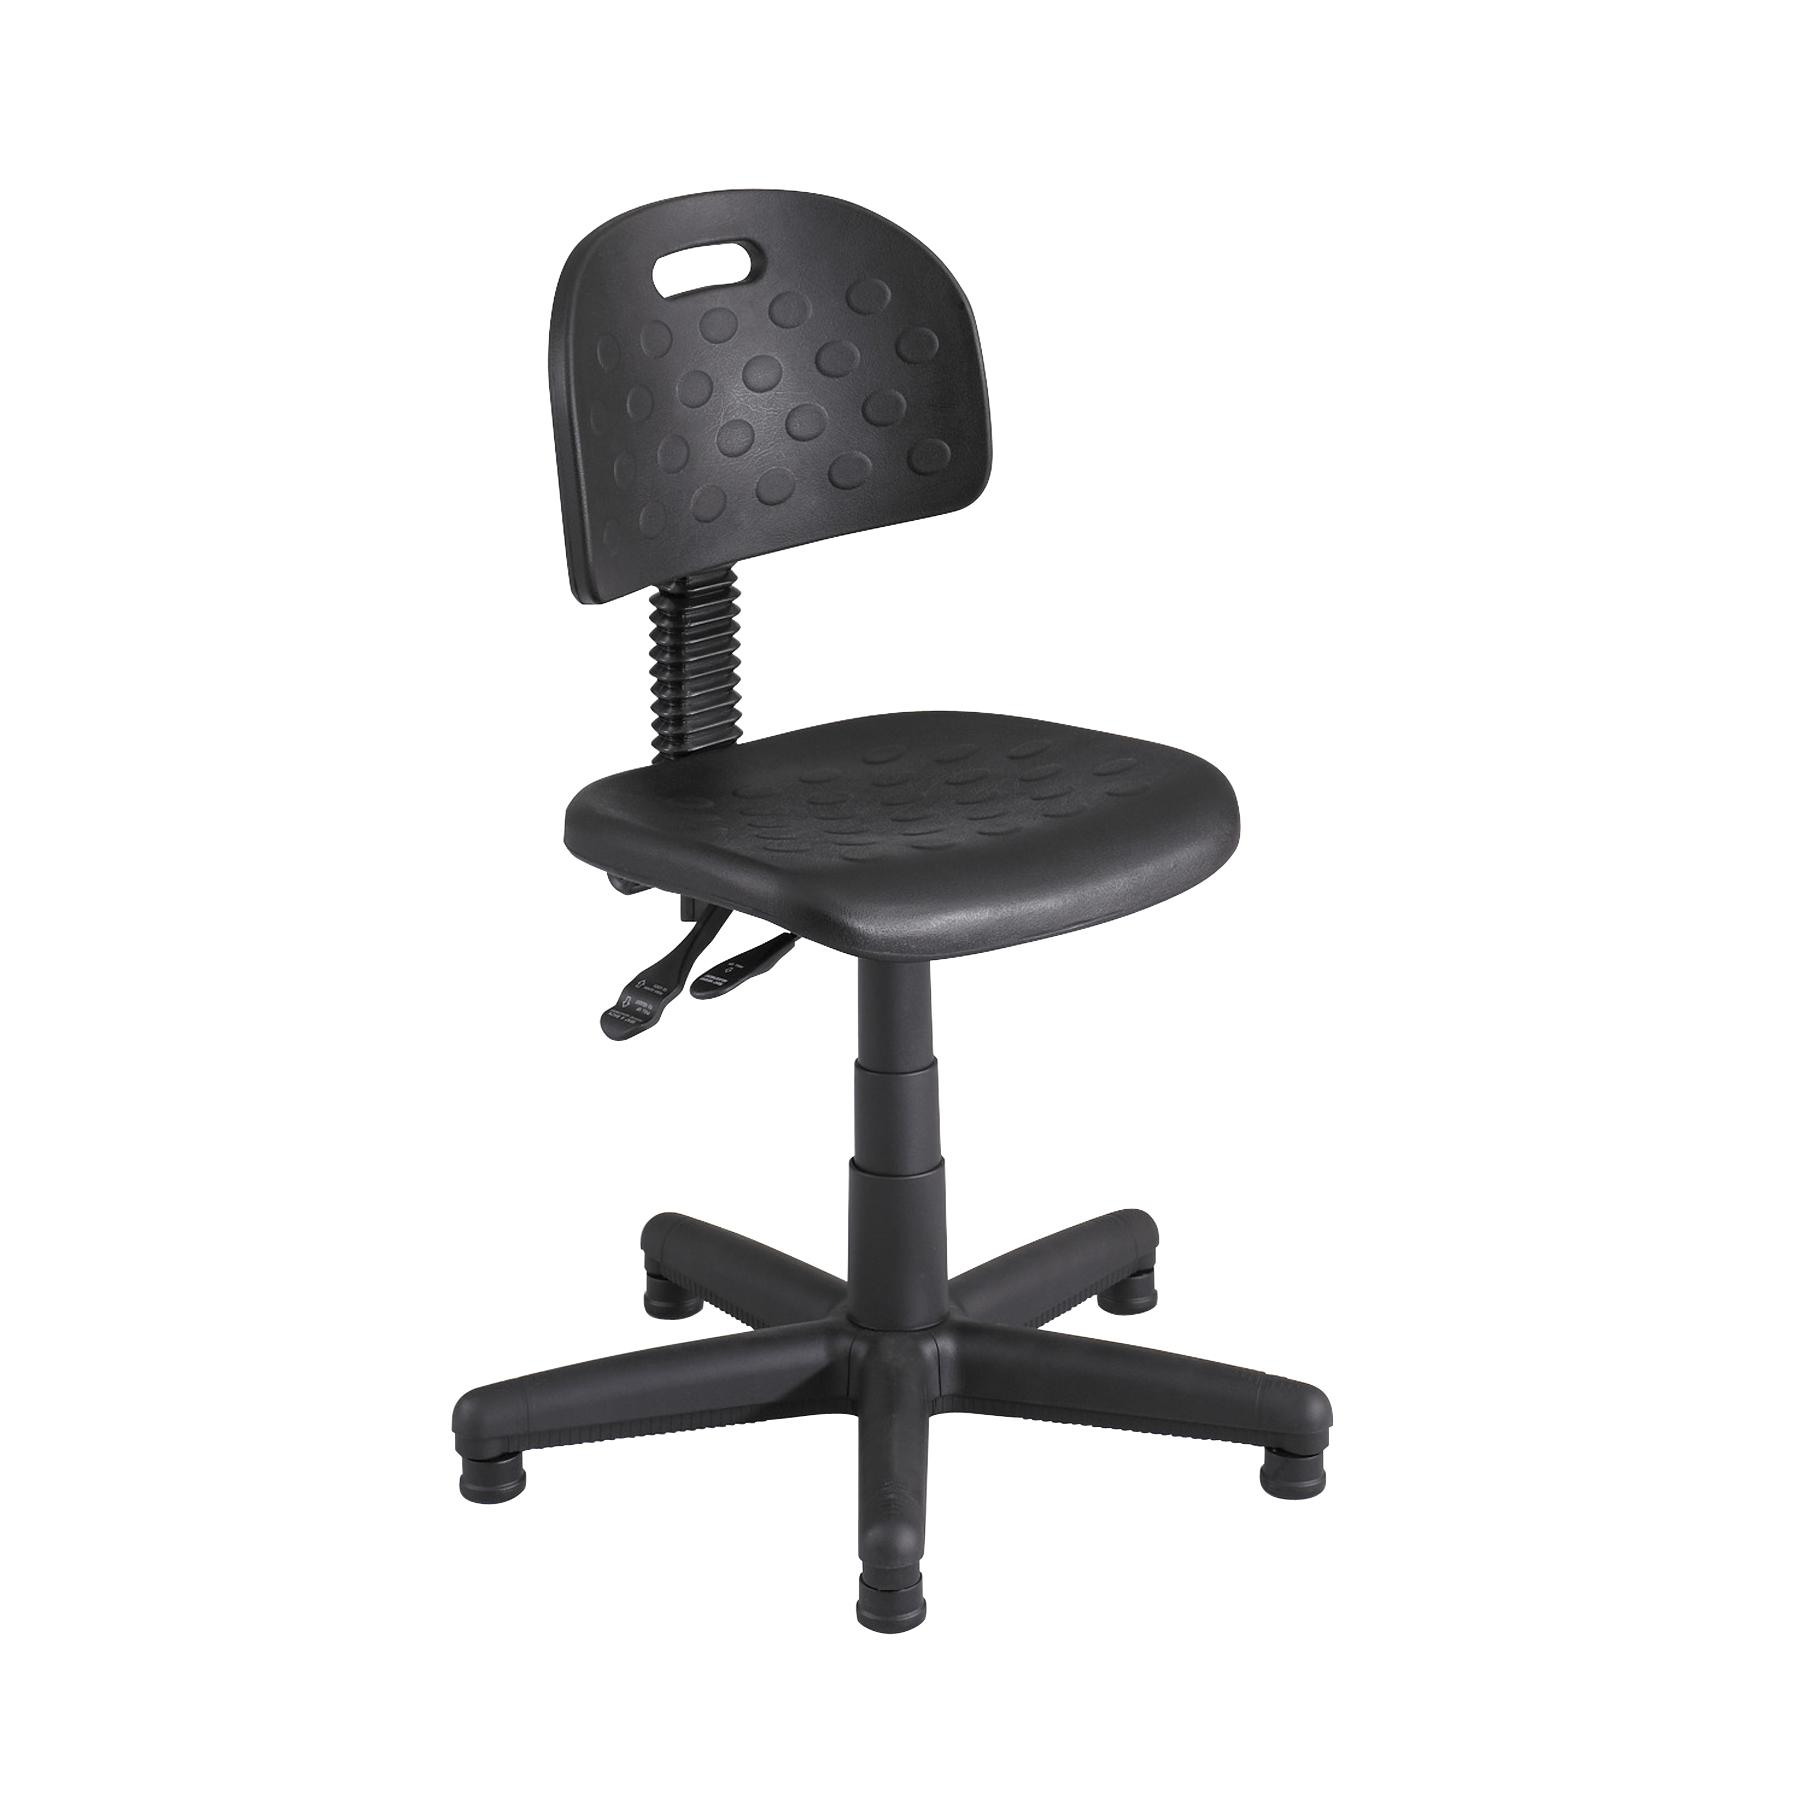 Furniture > Office Furniture > Desk Chair > Counter Height Desk Chair